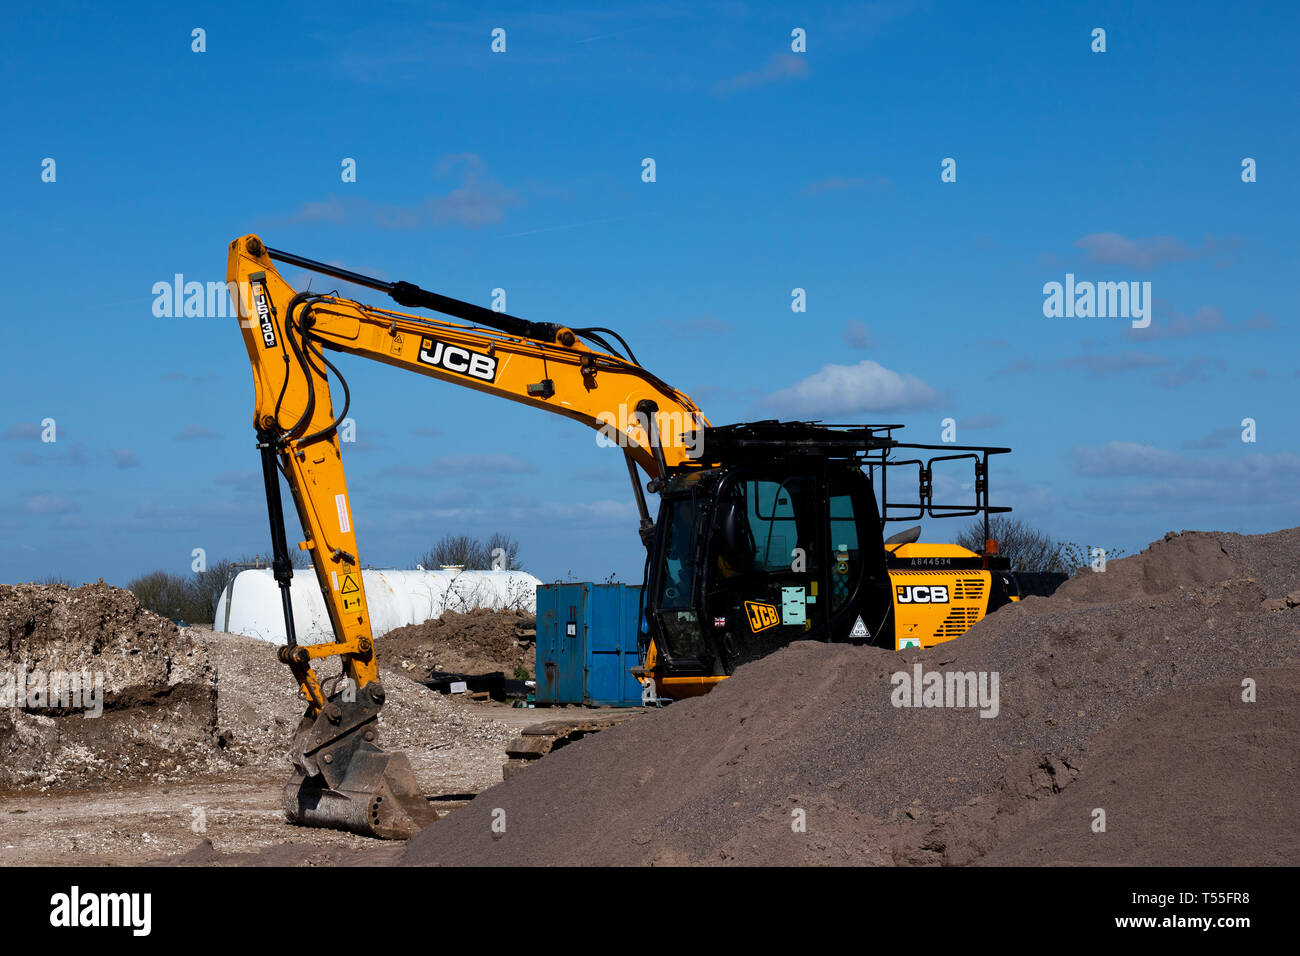 construction site excavators parked on earthworks on building site - Stock Image